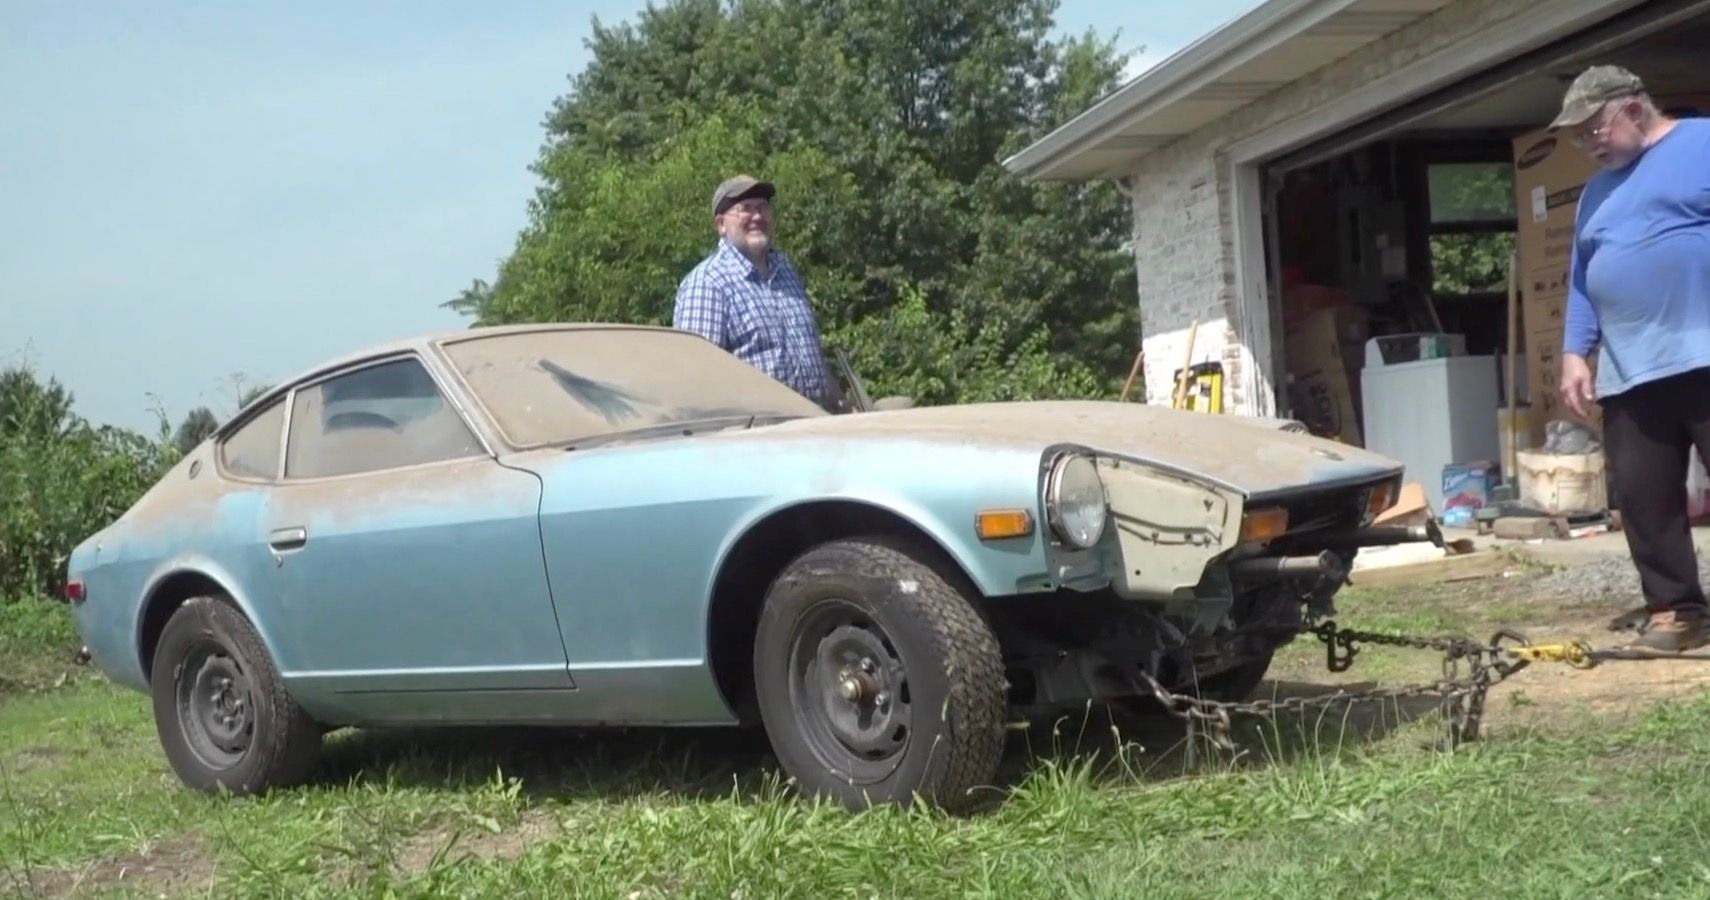 It's About Time This Rare Datsun 280z Barn Find Got Washed After 44 Years Collecting Dust